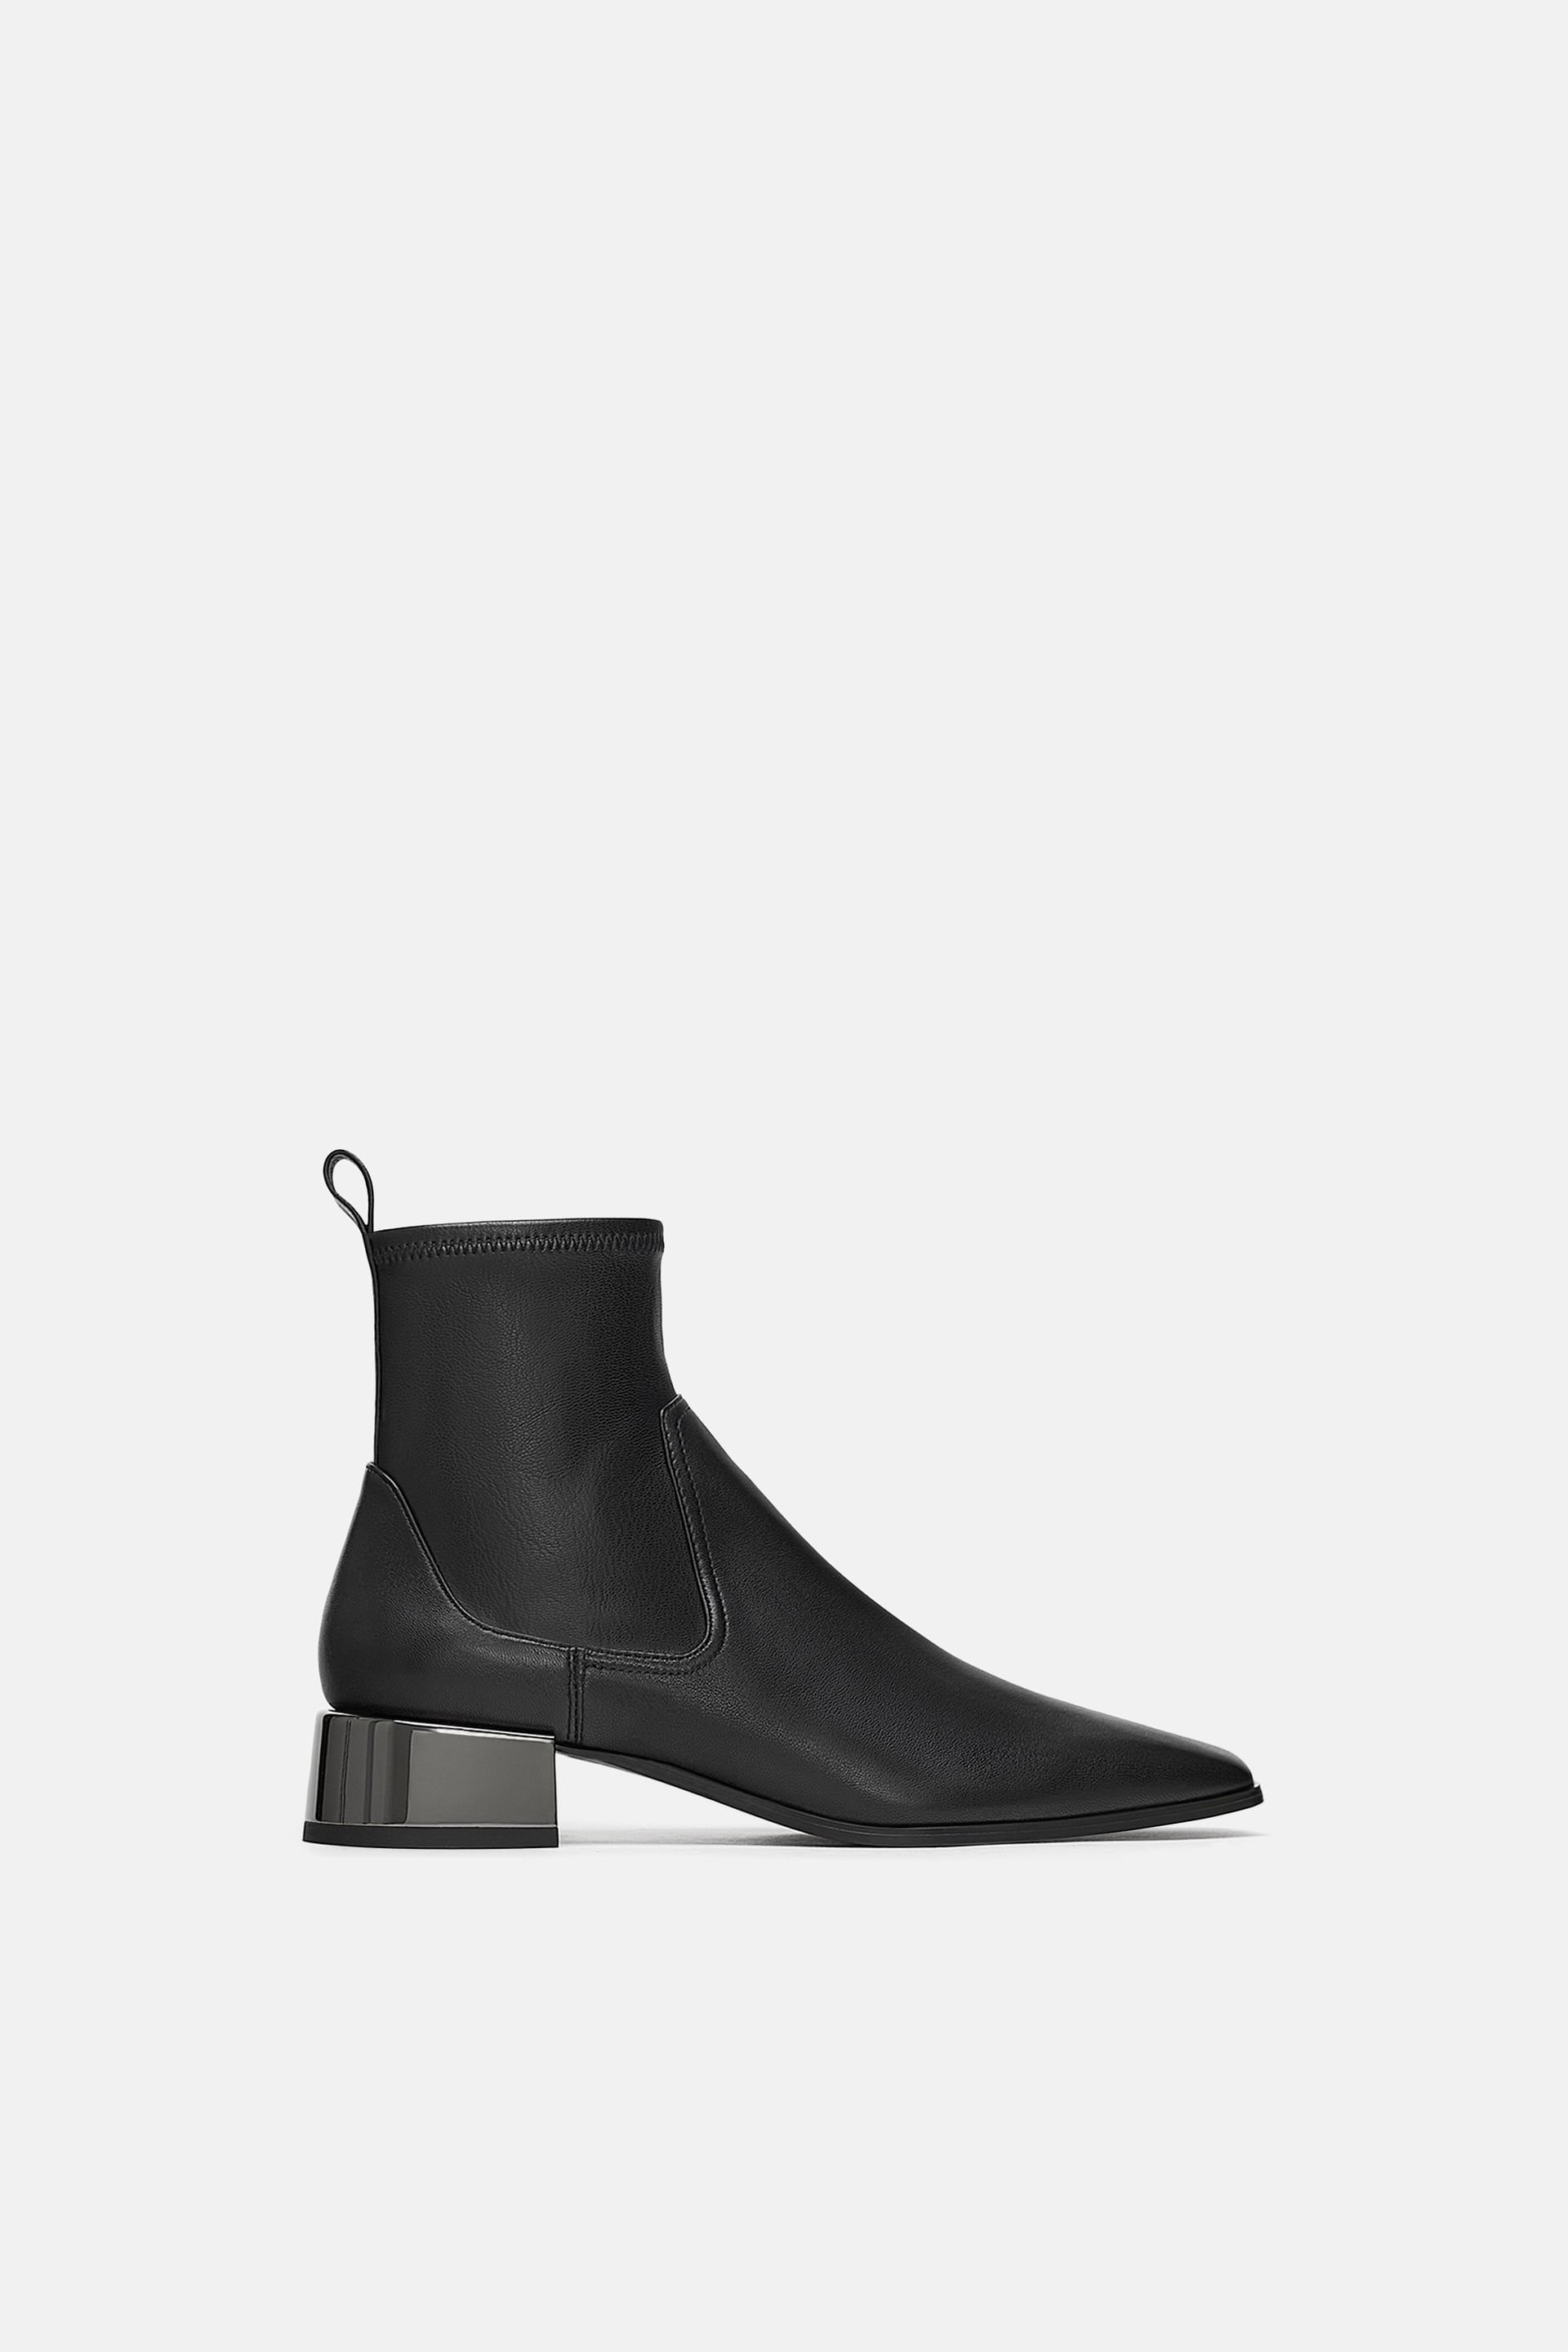 low heeled square toe leather ankle boots shoes in 2019  damen stiefel flache stiefel c 16_18 #8